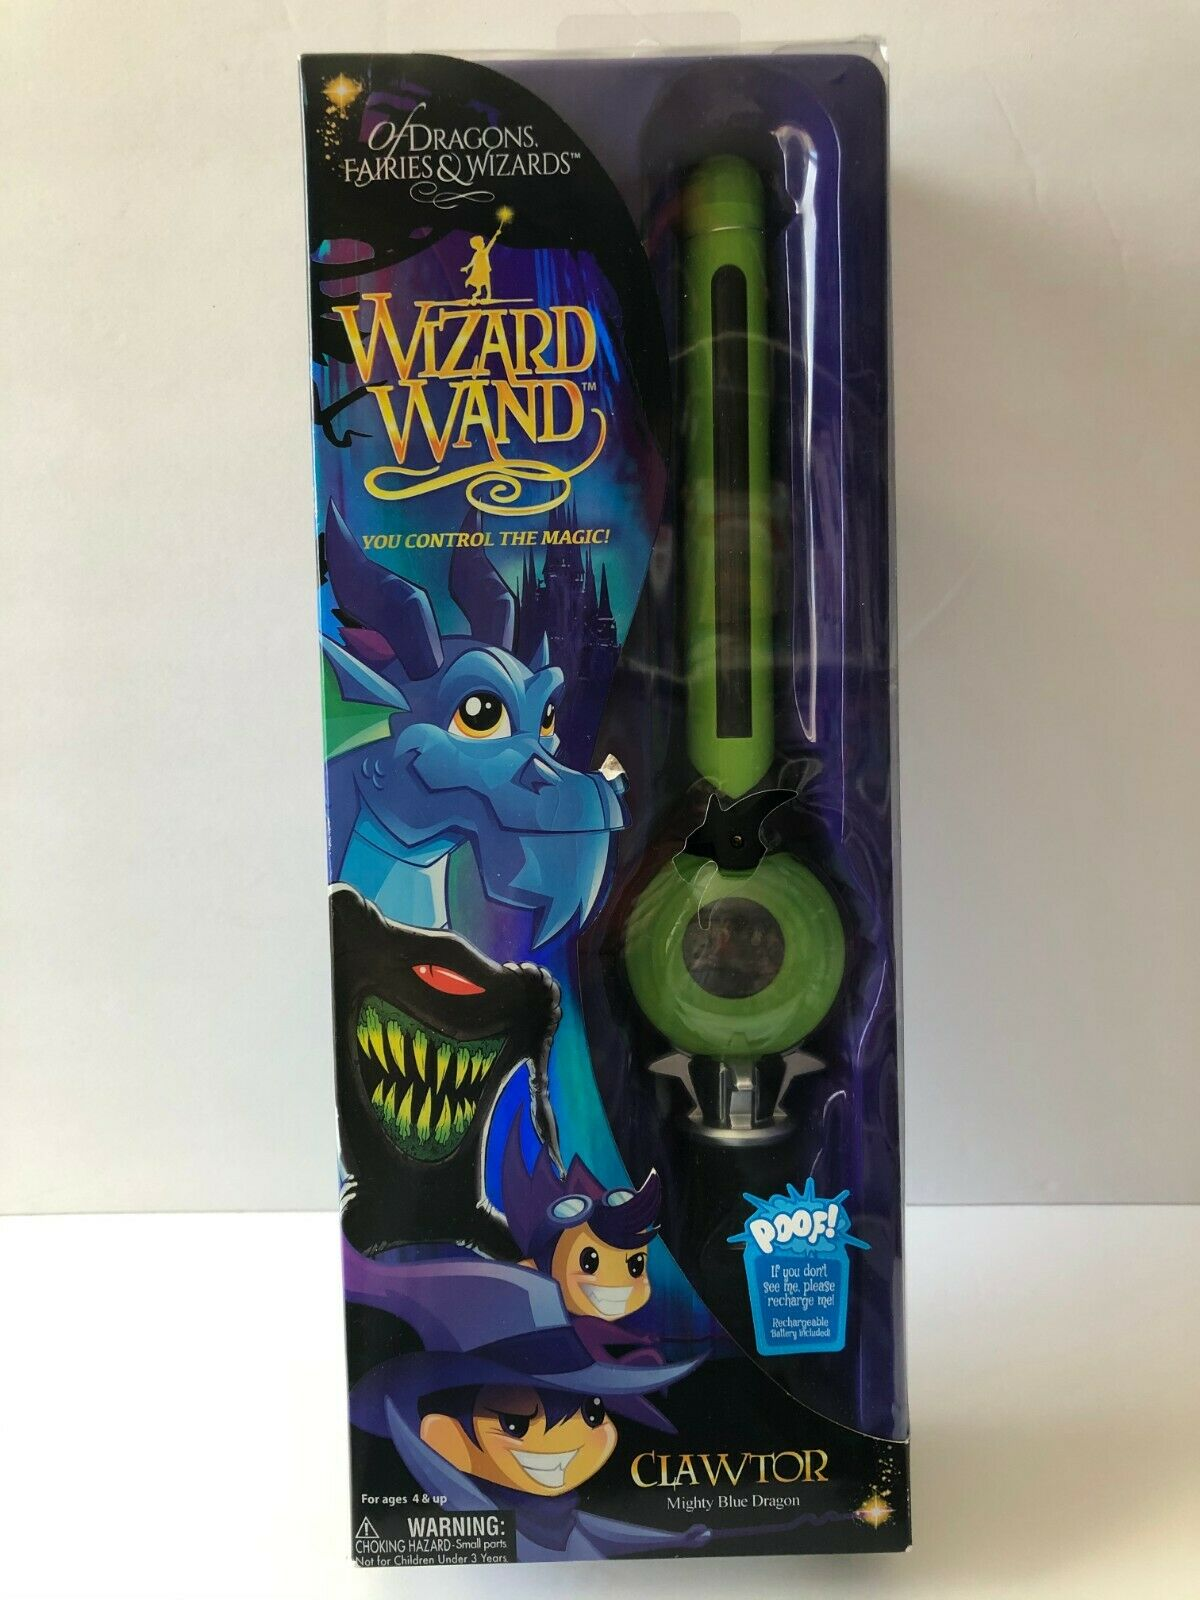 Of Dragons Fairies /& Wizards Wizard Wand Clawtor Mighty Green Dragon